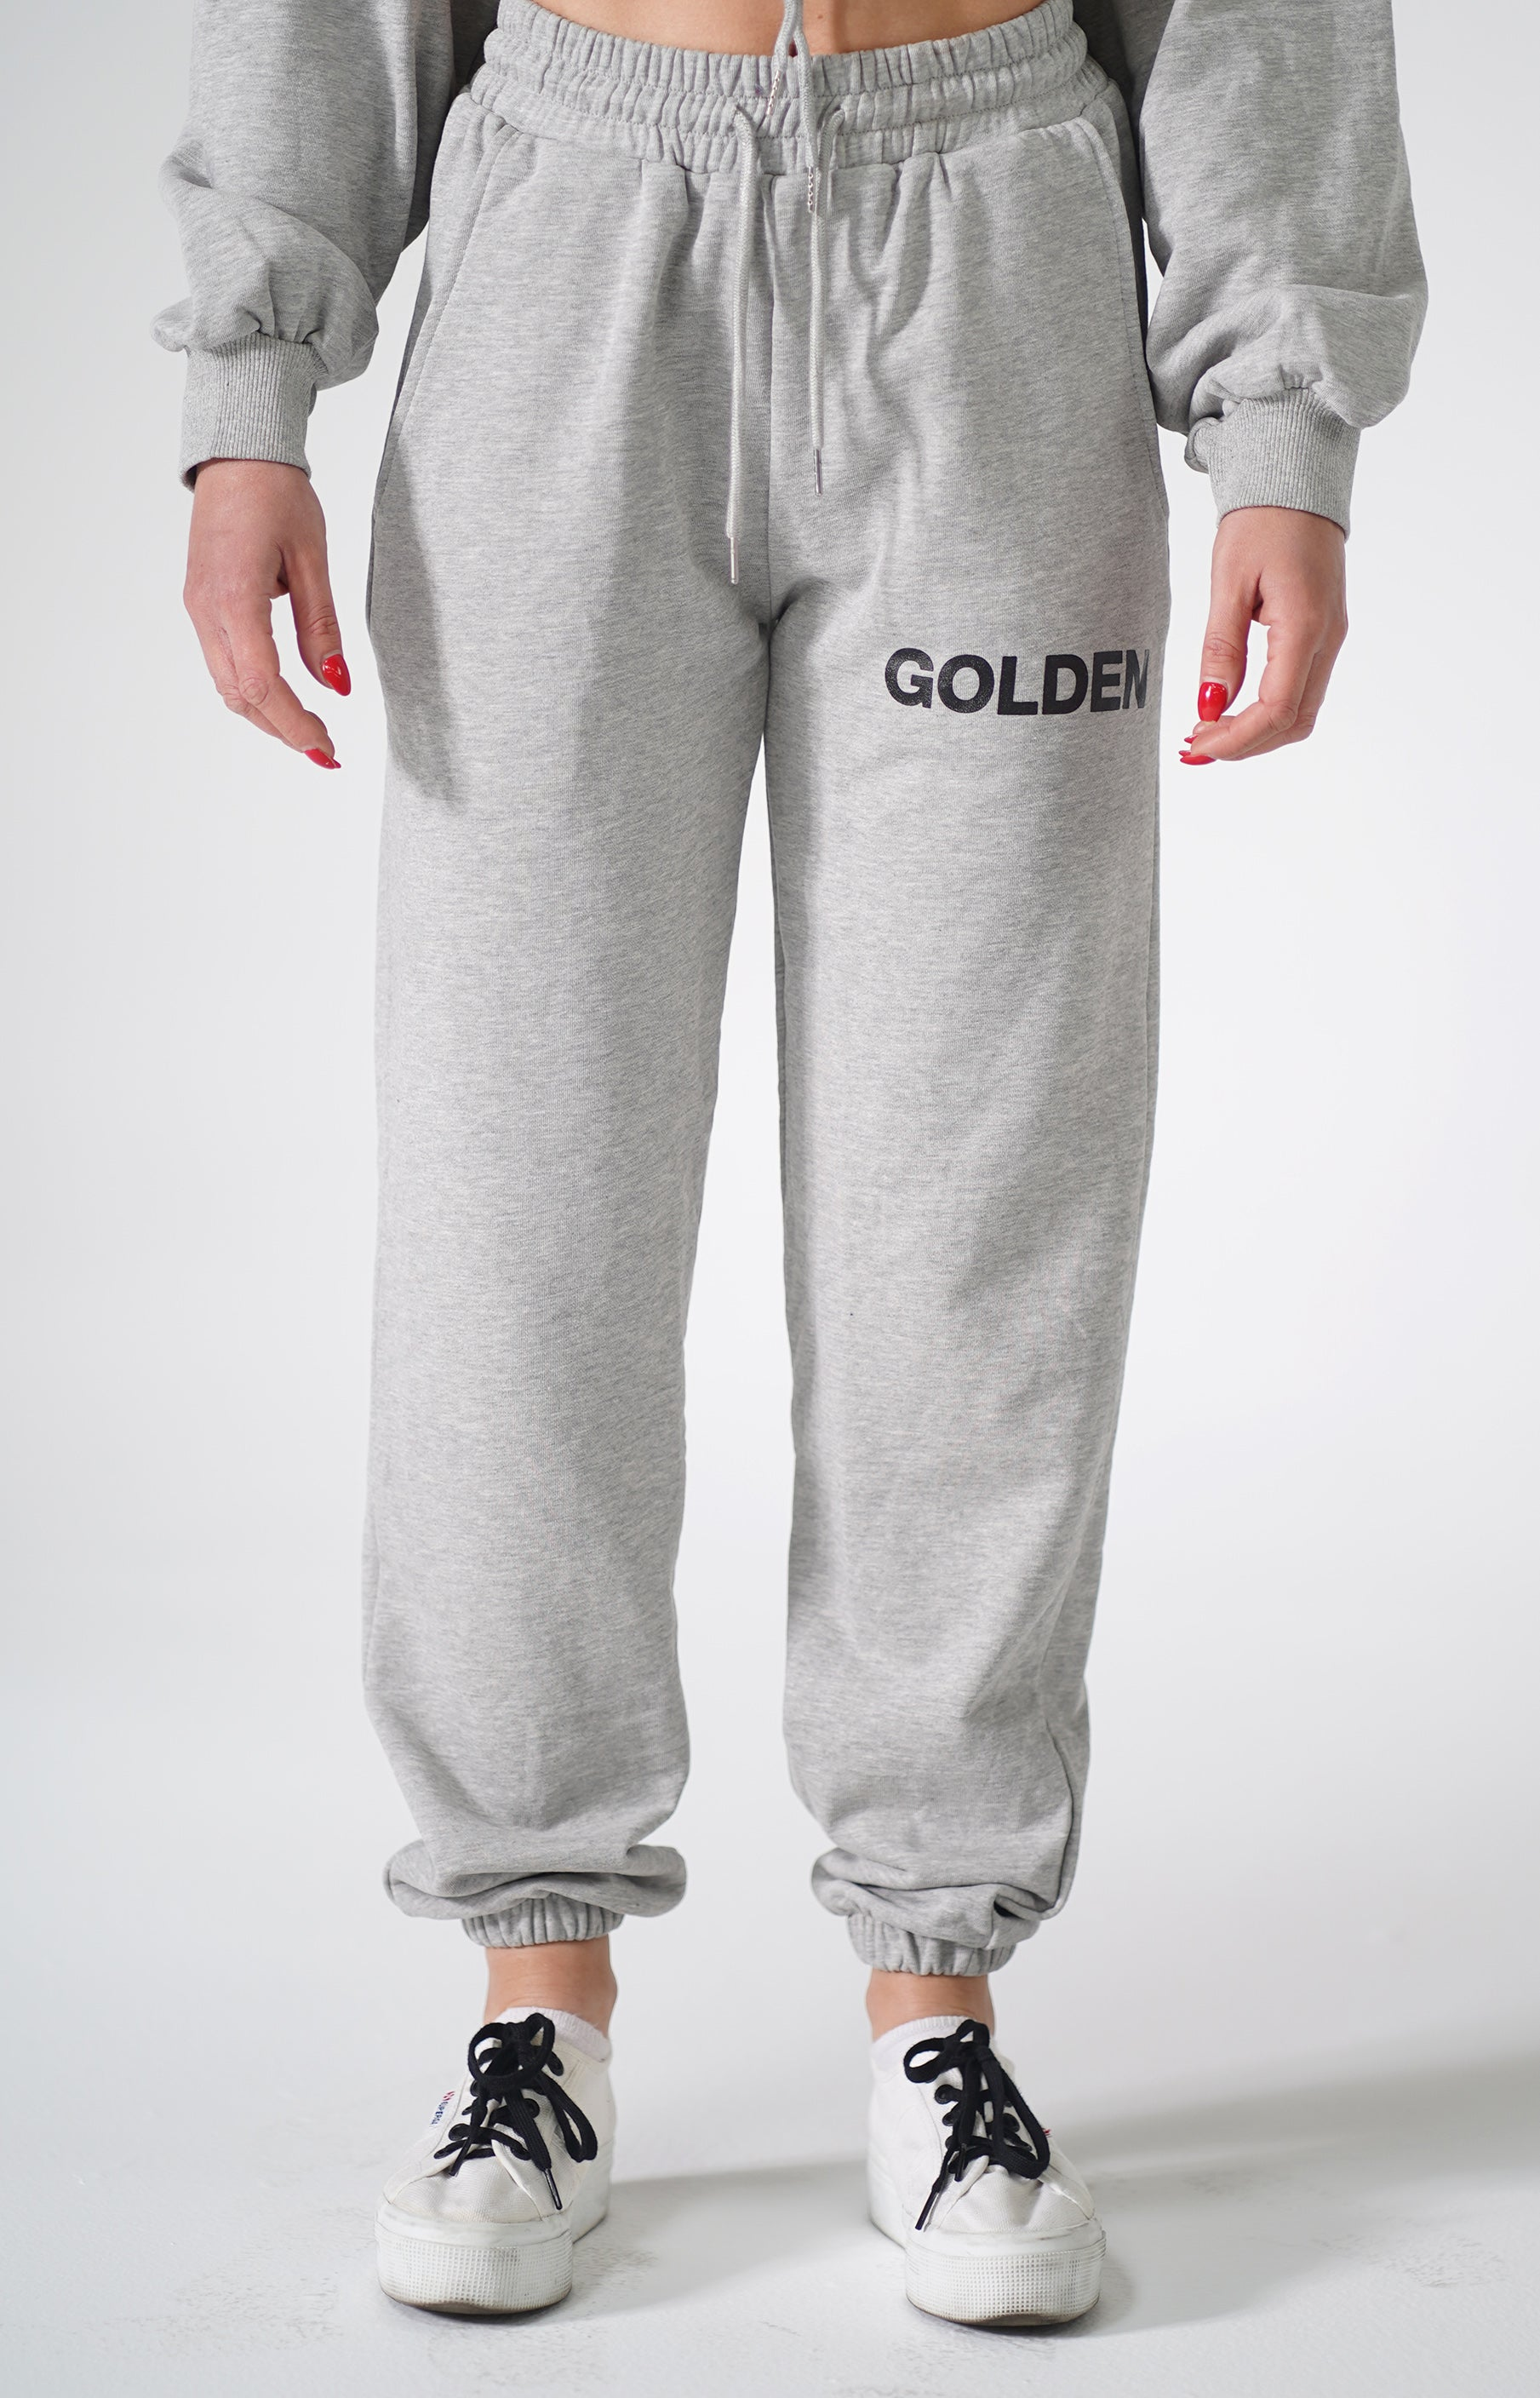 Grey Golden Sweatsuit